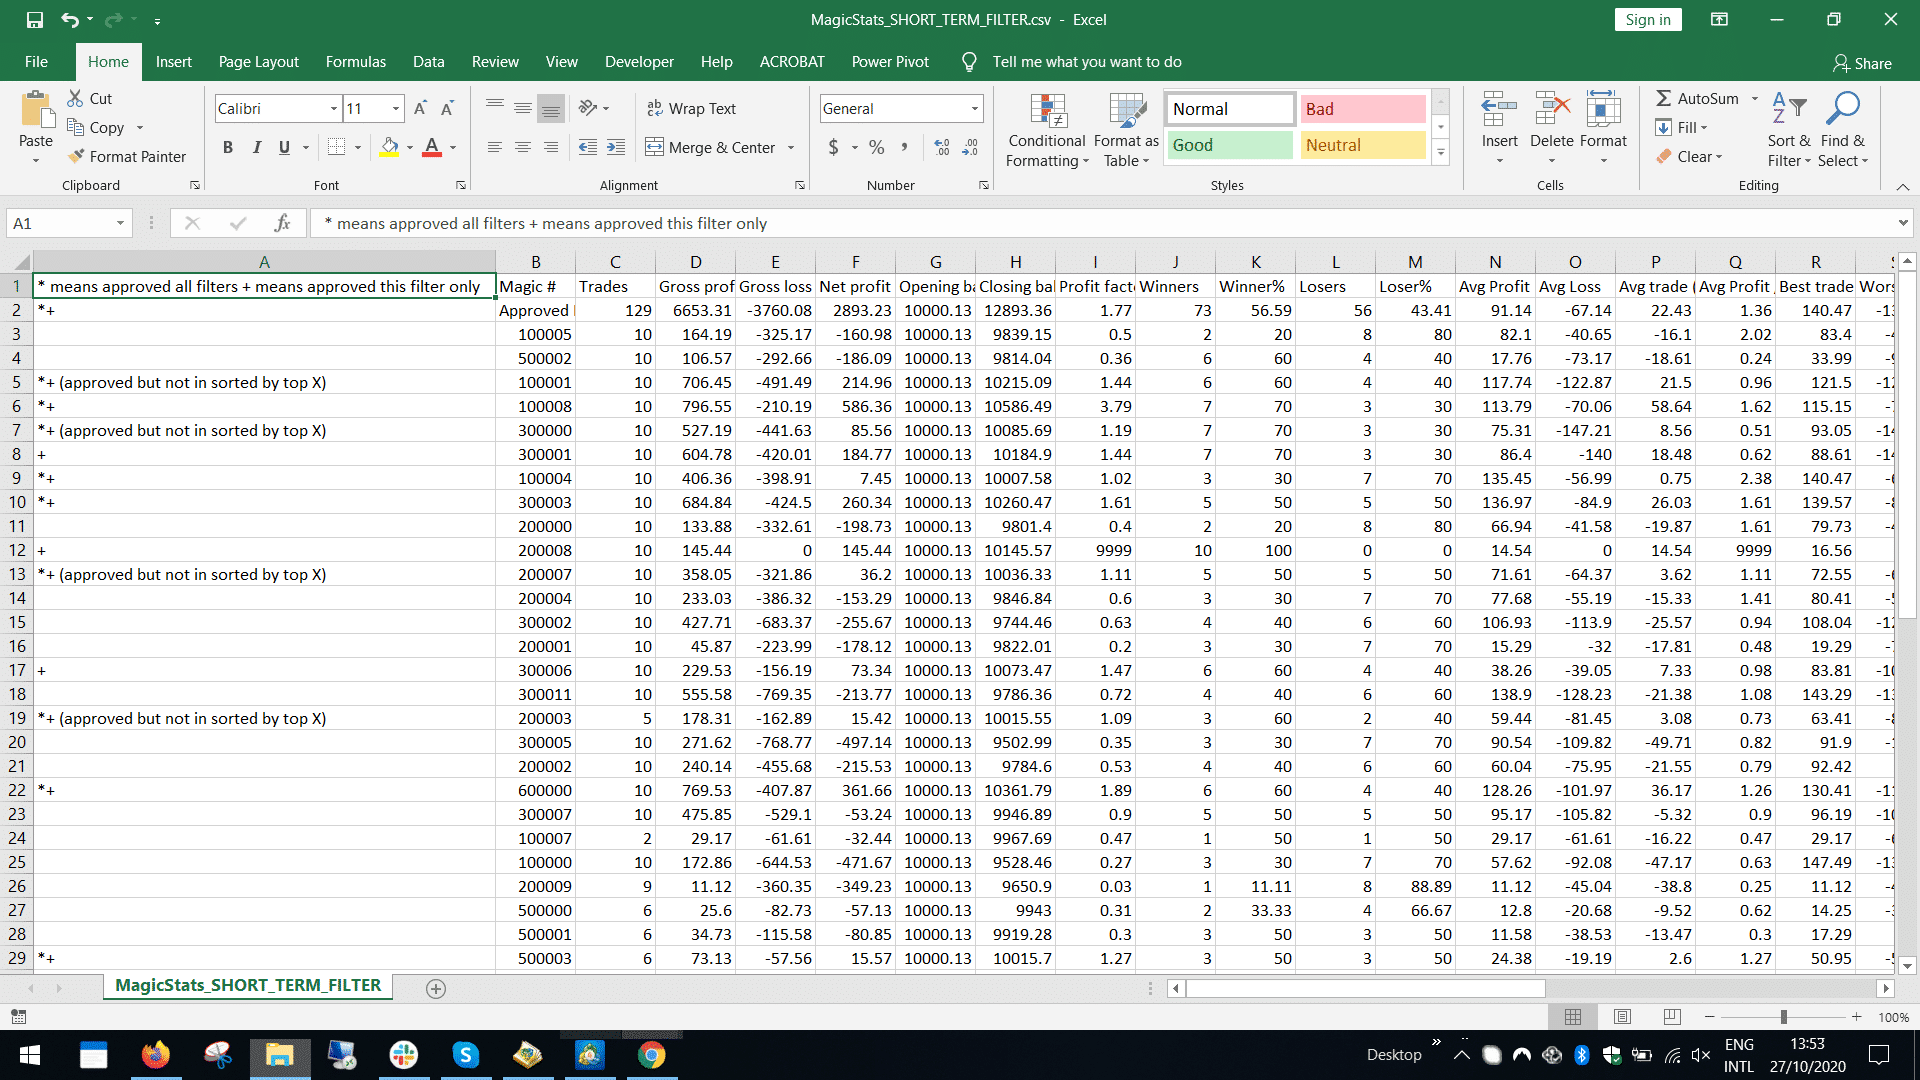 Strategy Samurai outputted short term magic filter file for analysis